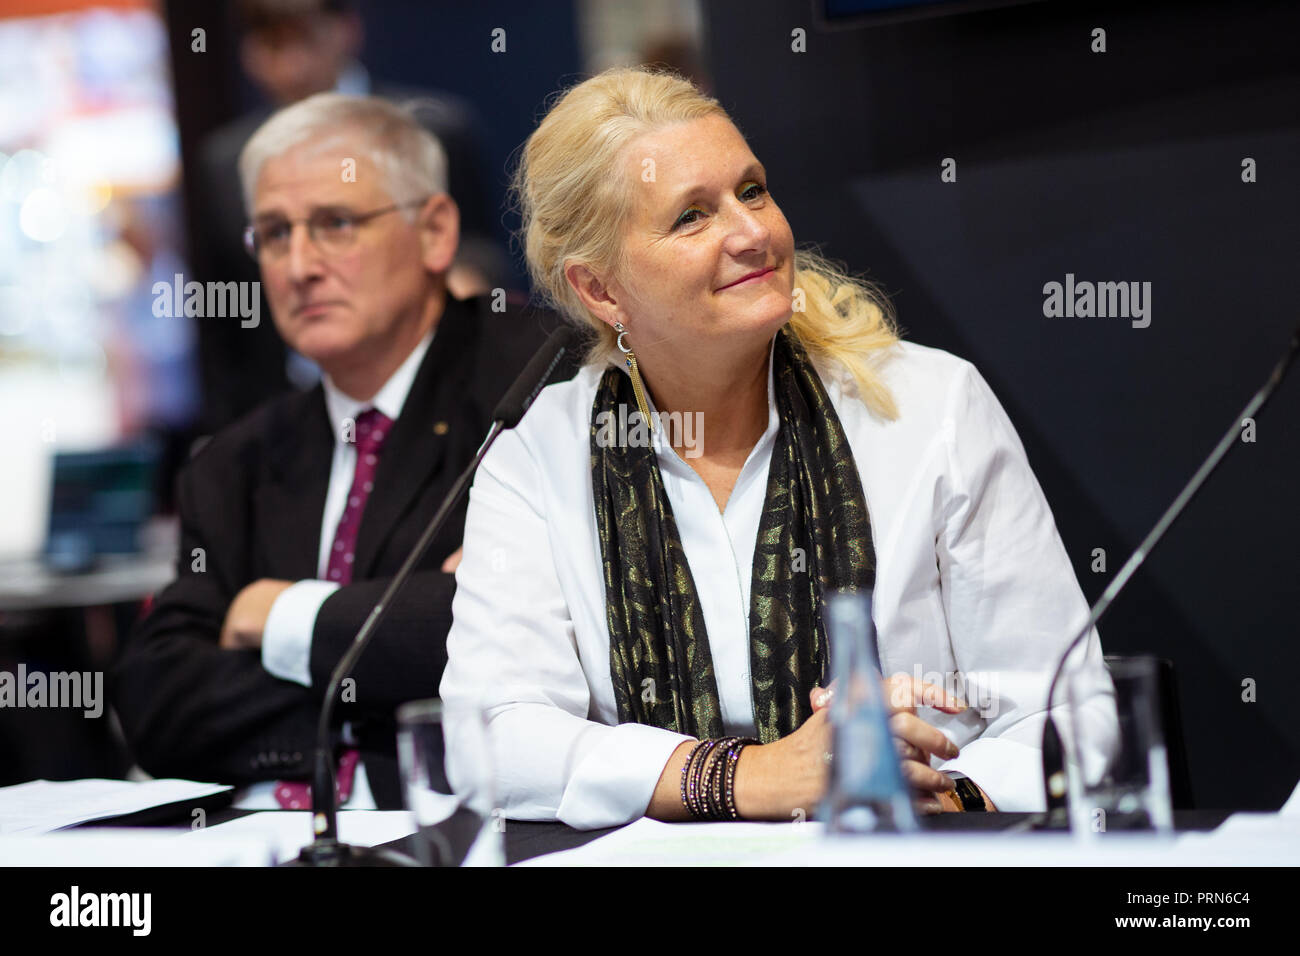 03 October 2018, Bremen: Hansjörg Dittus (l), Member of the Executive Board of the German Aerospace Center (DLR) and Pascale Ehrenfreund, Chairman of the Executive Board of the German Aerospace Center (DLR), sit at the 69th International Astronautical Congress IAC at the press conference on the landing of the lander 'Mascot' on the asteroid Ryugu. The 'Hayabusa2' probe of the Japanese space agency JAXA has brought the lander to the asteroid. The German Aerospace Center has developed and built 'Mascot' in collaboration with the French Space Agency CNES. Photo: Mohssen Assanimoghaddam/dpa - Stock Image